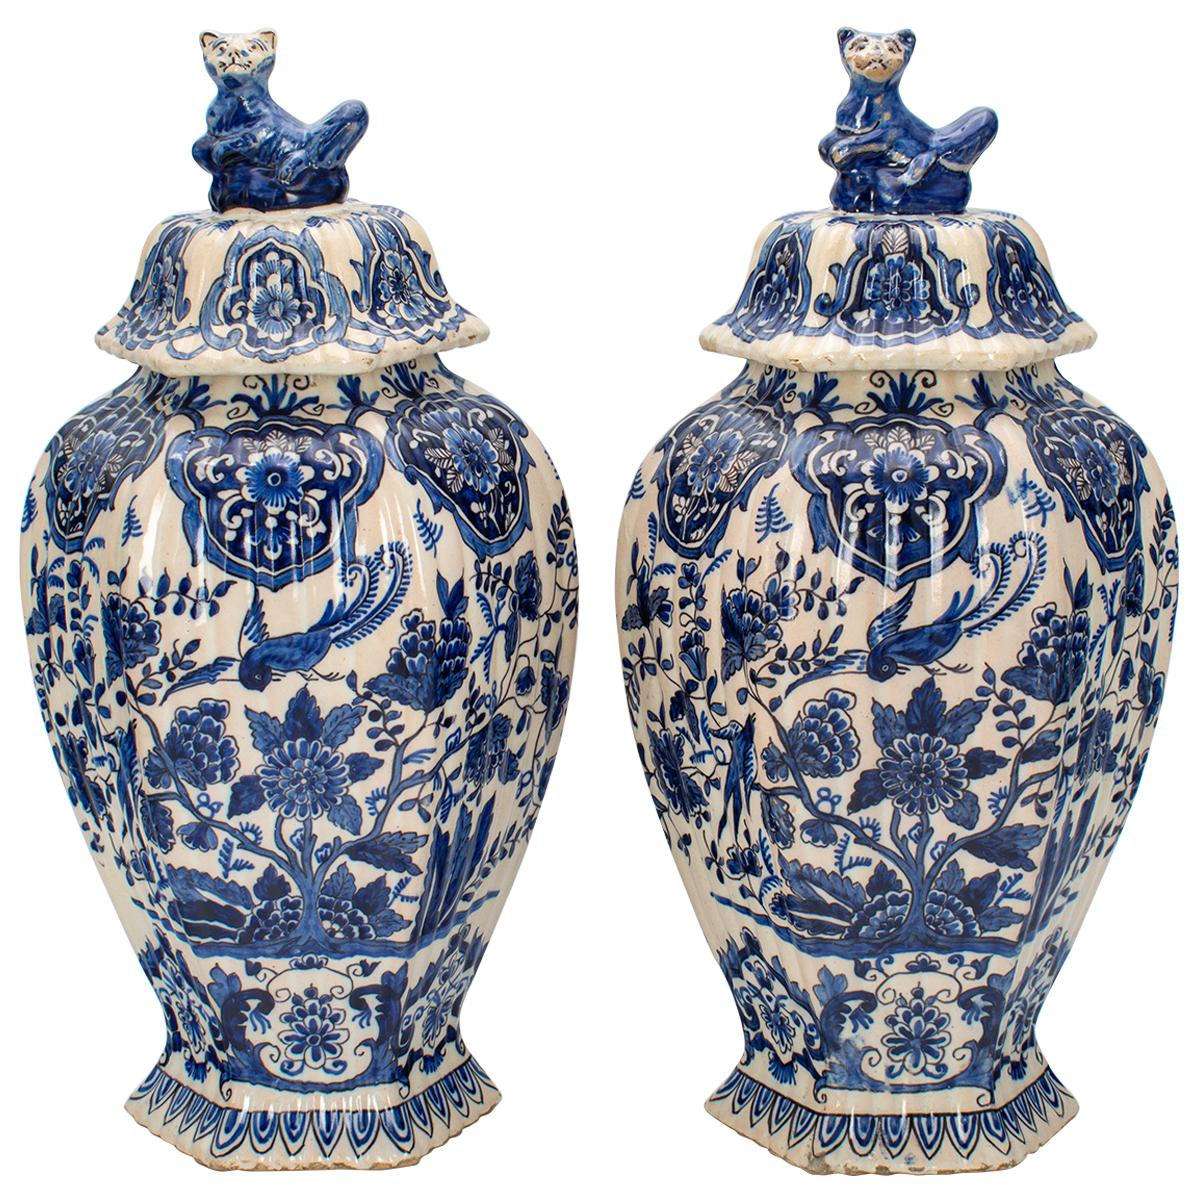 Pair of Early 18th Century Blue and White Delft Jars